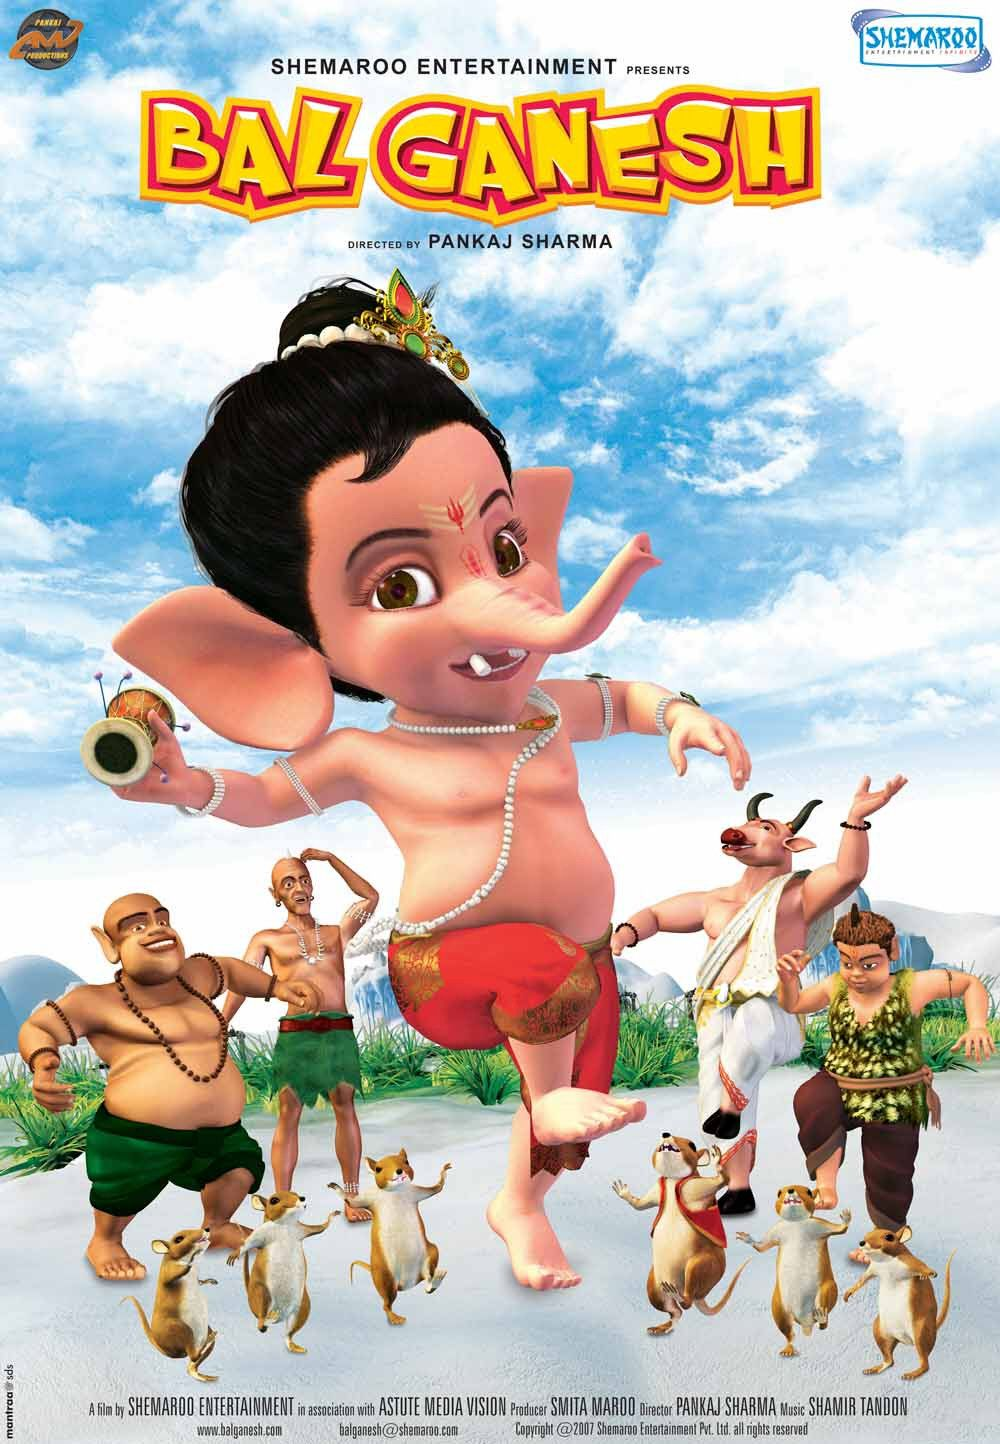 bal ganesh full movie in hindi free download